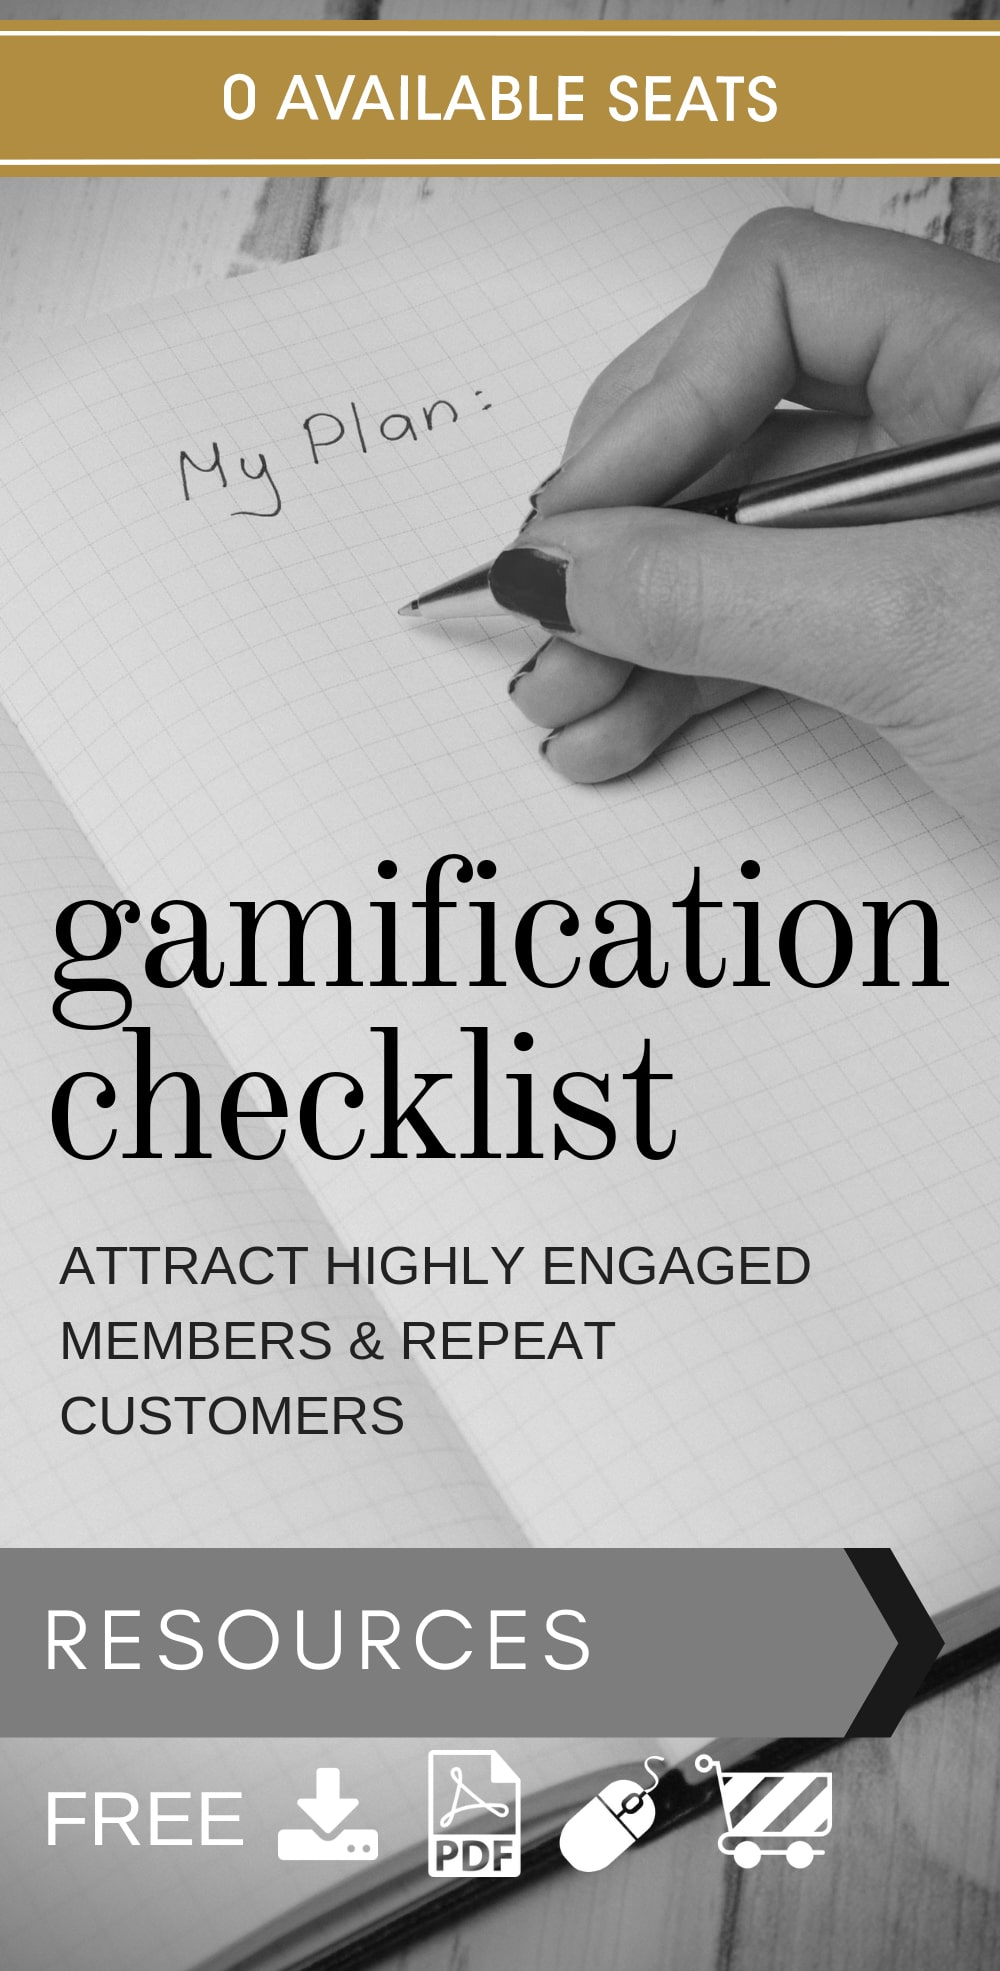 GamificationChecklist-disabled-min